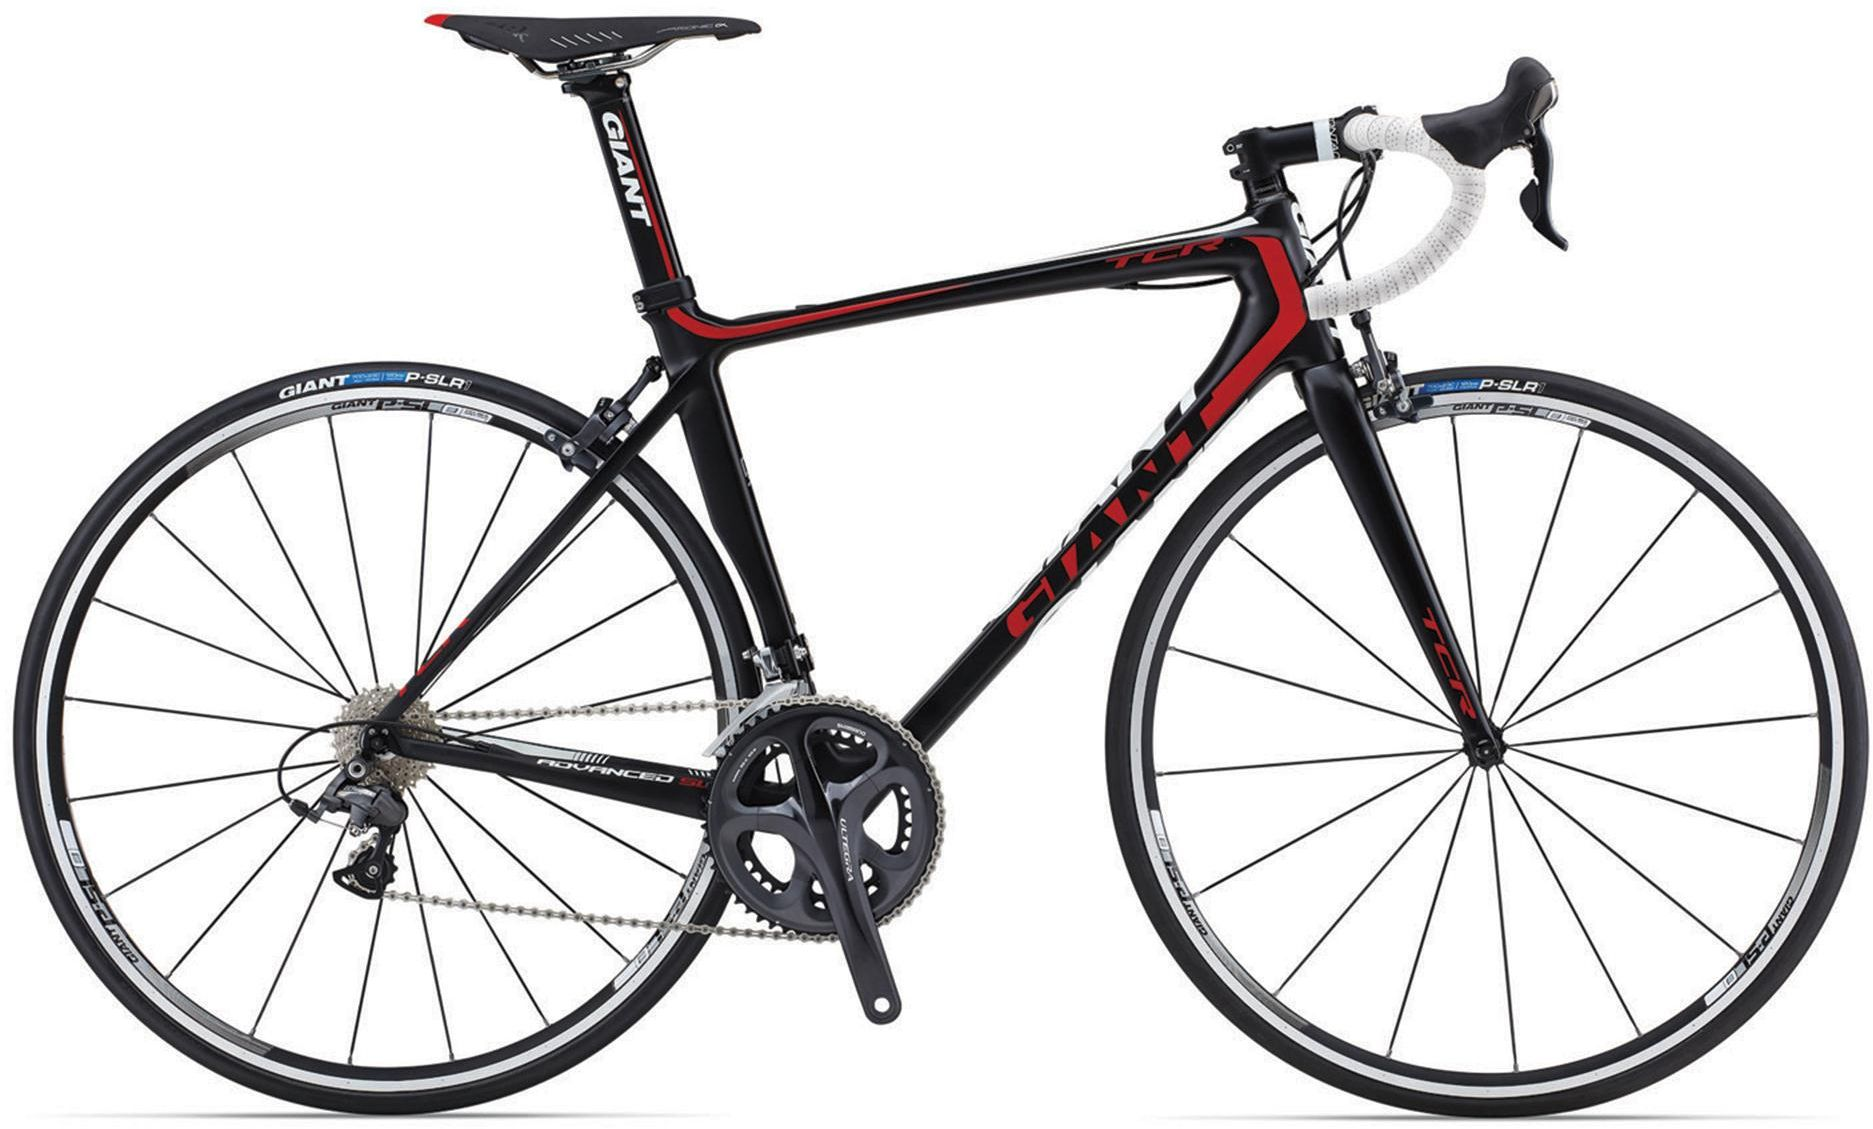 Giant TCR Advanced SL 4 2013 review - The Bike List